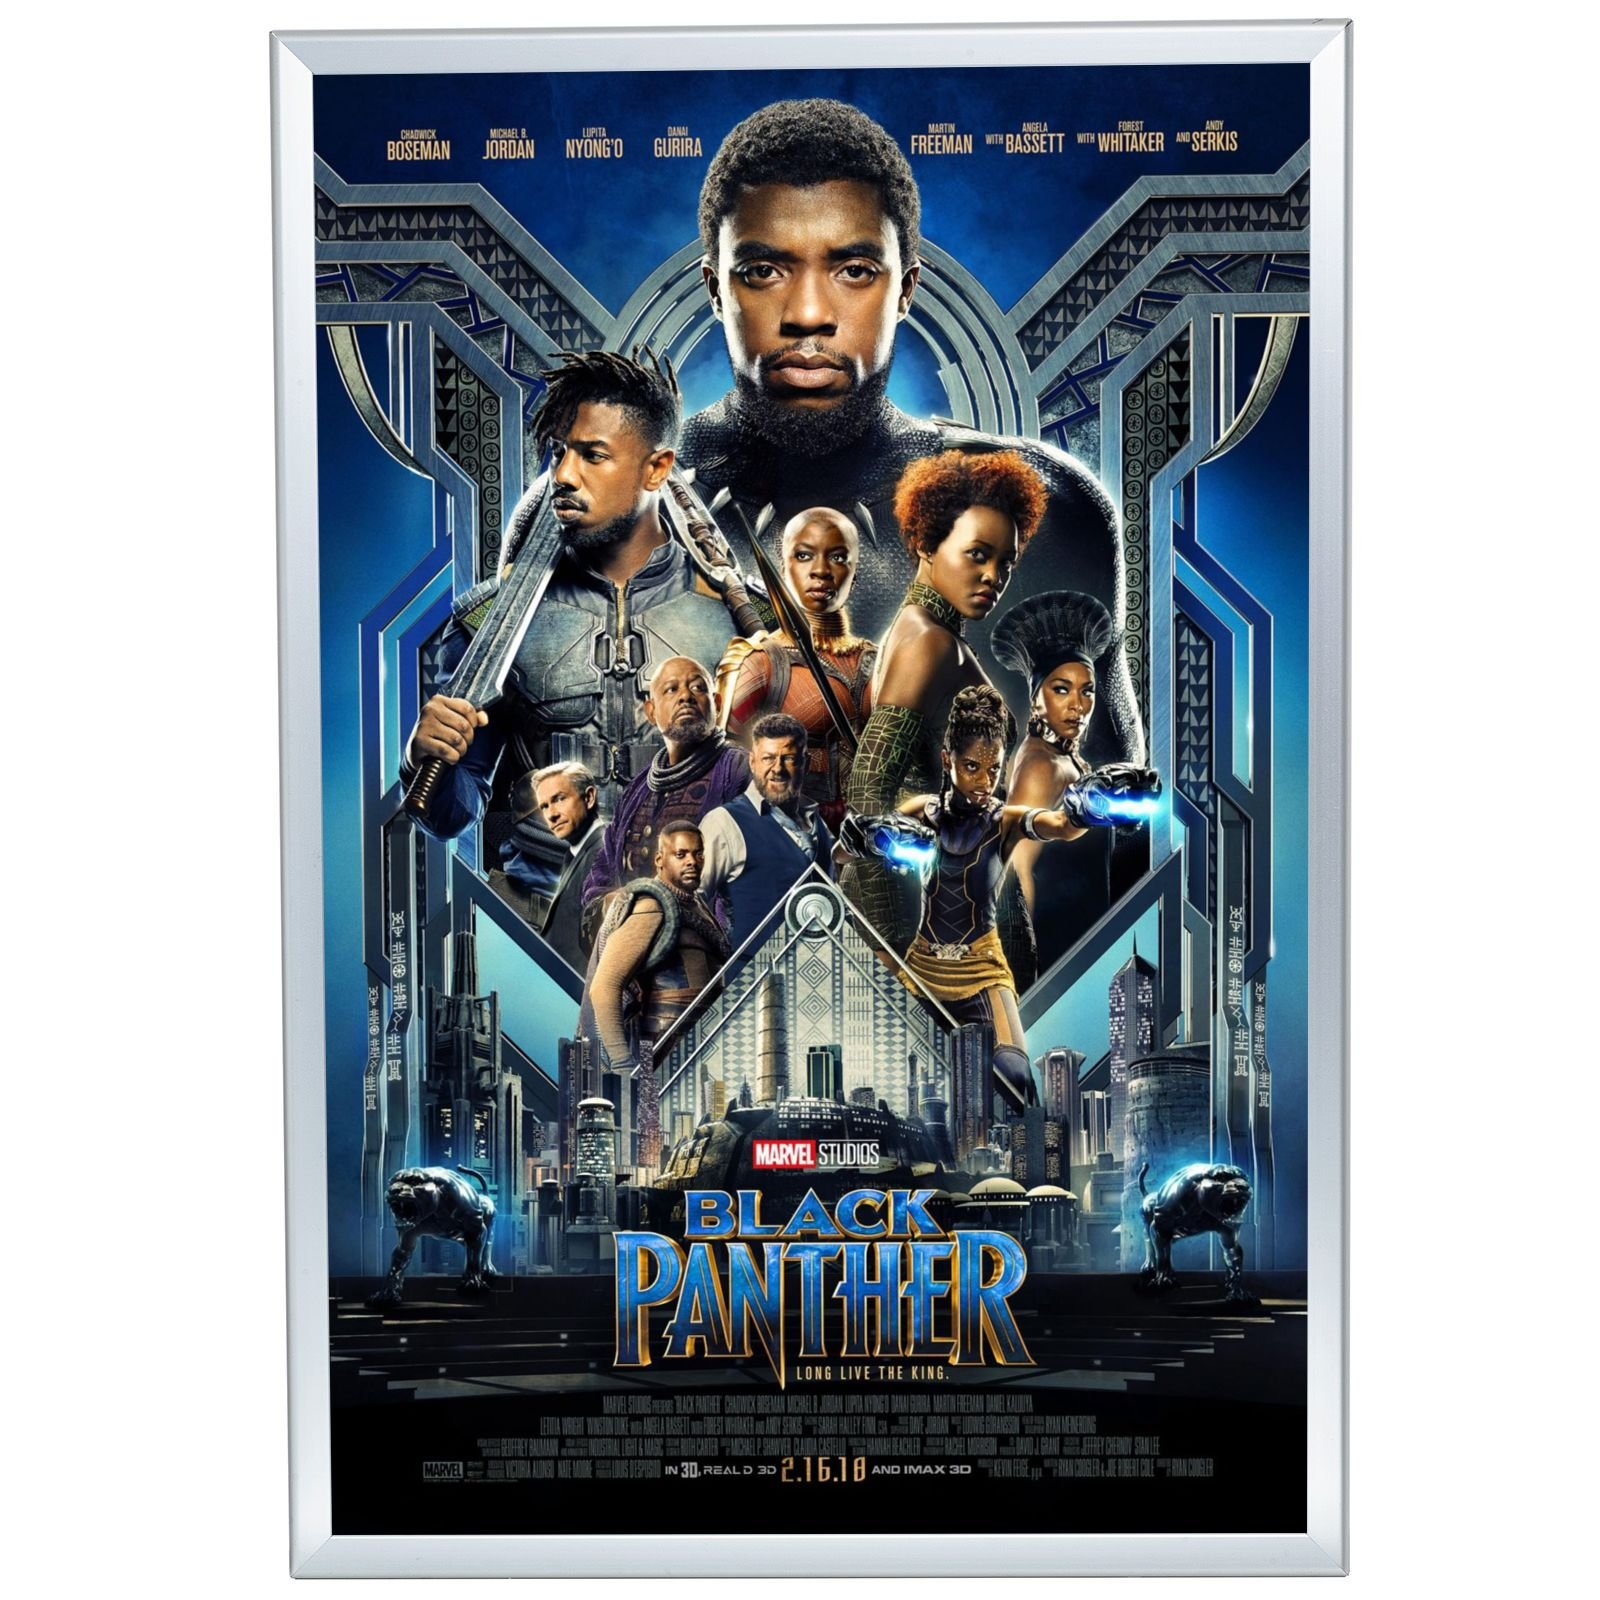 SnapeZo Movie Poster Frame 27x40 Inches, Silver 1.25'' Aluminum Profile, Front-Loading Snap Frame, Wall Mounting, Professional Series for One Sheet Movie Posters